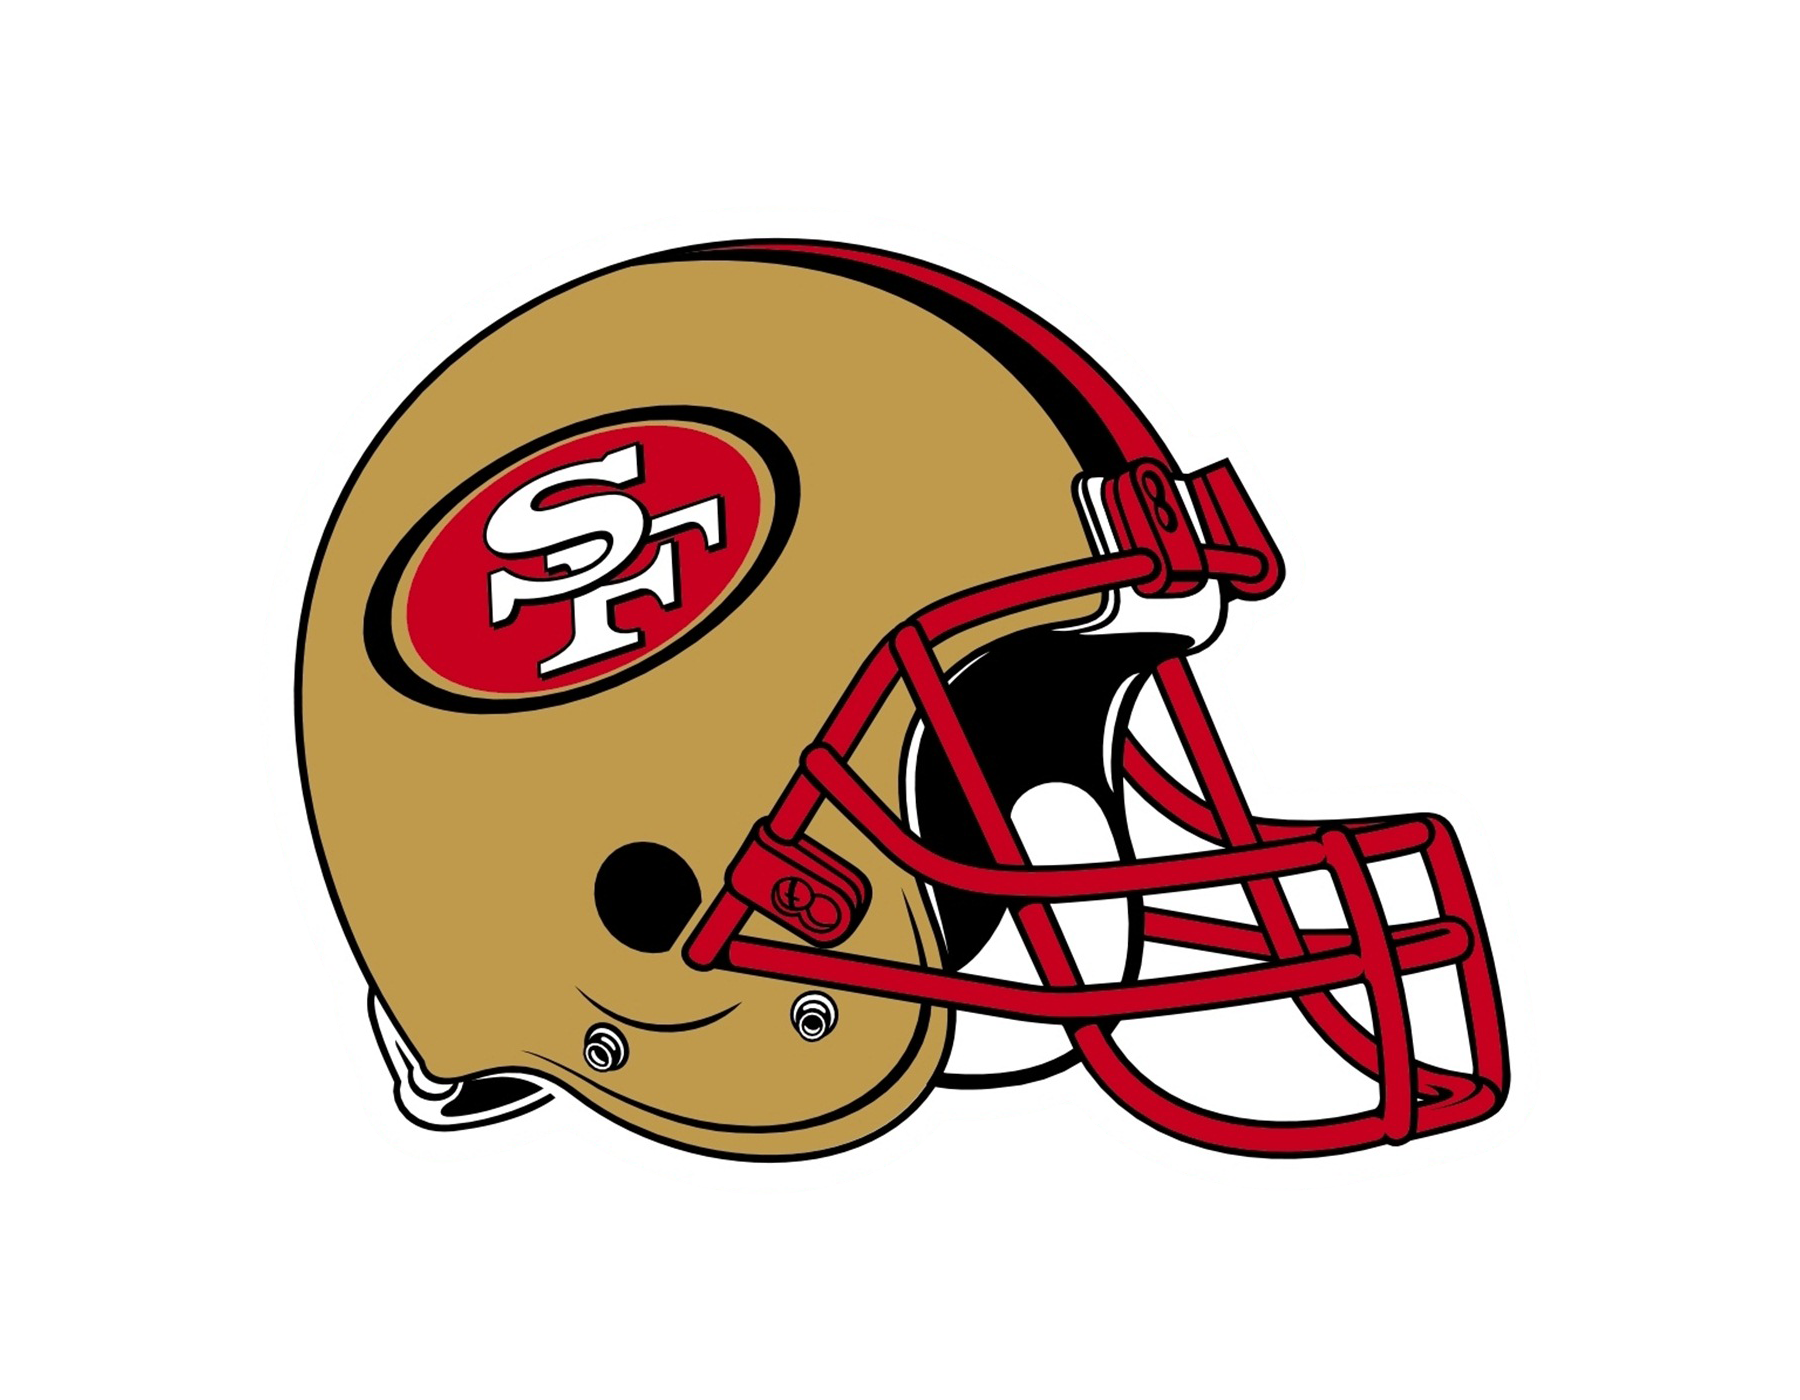 49ers football clipart jpg black and white stock 49ers Logo Drawing at GetDrawings.com | Free for personal use 49ers ... jpg black and white stock